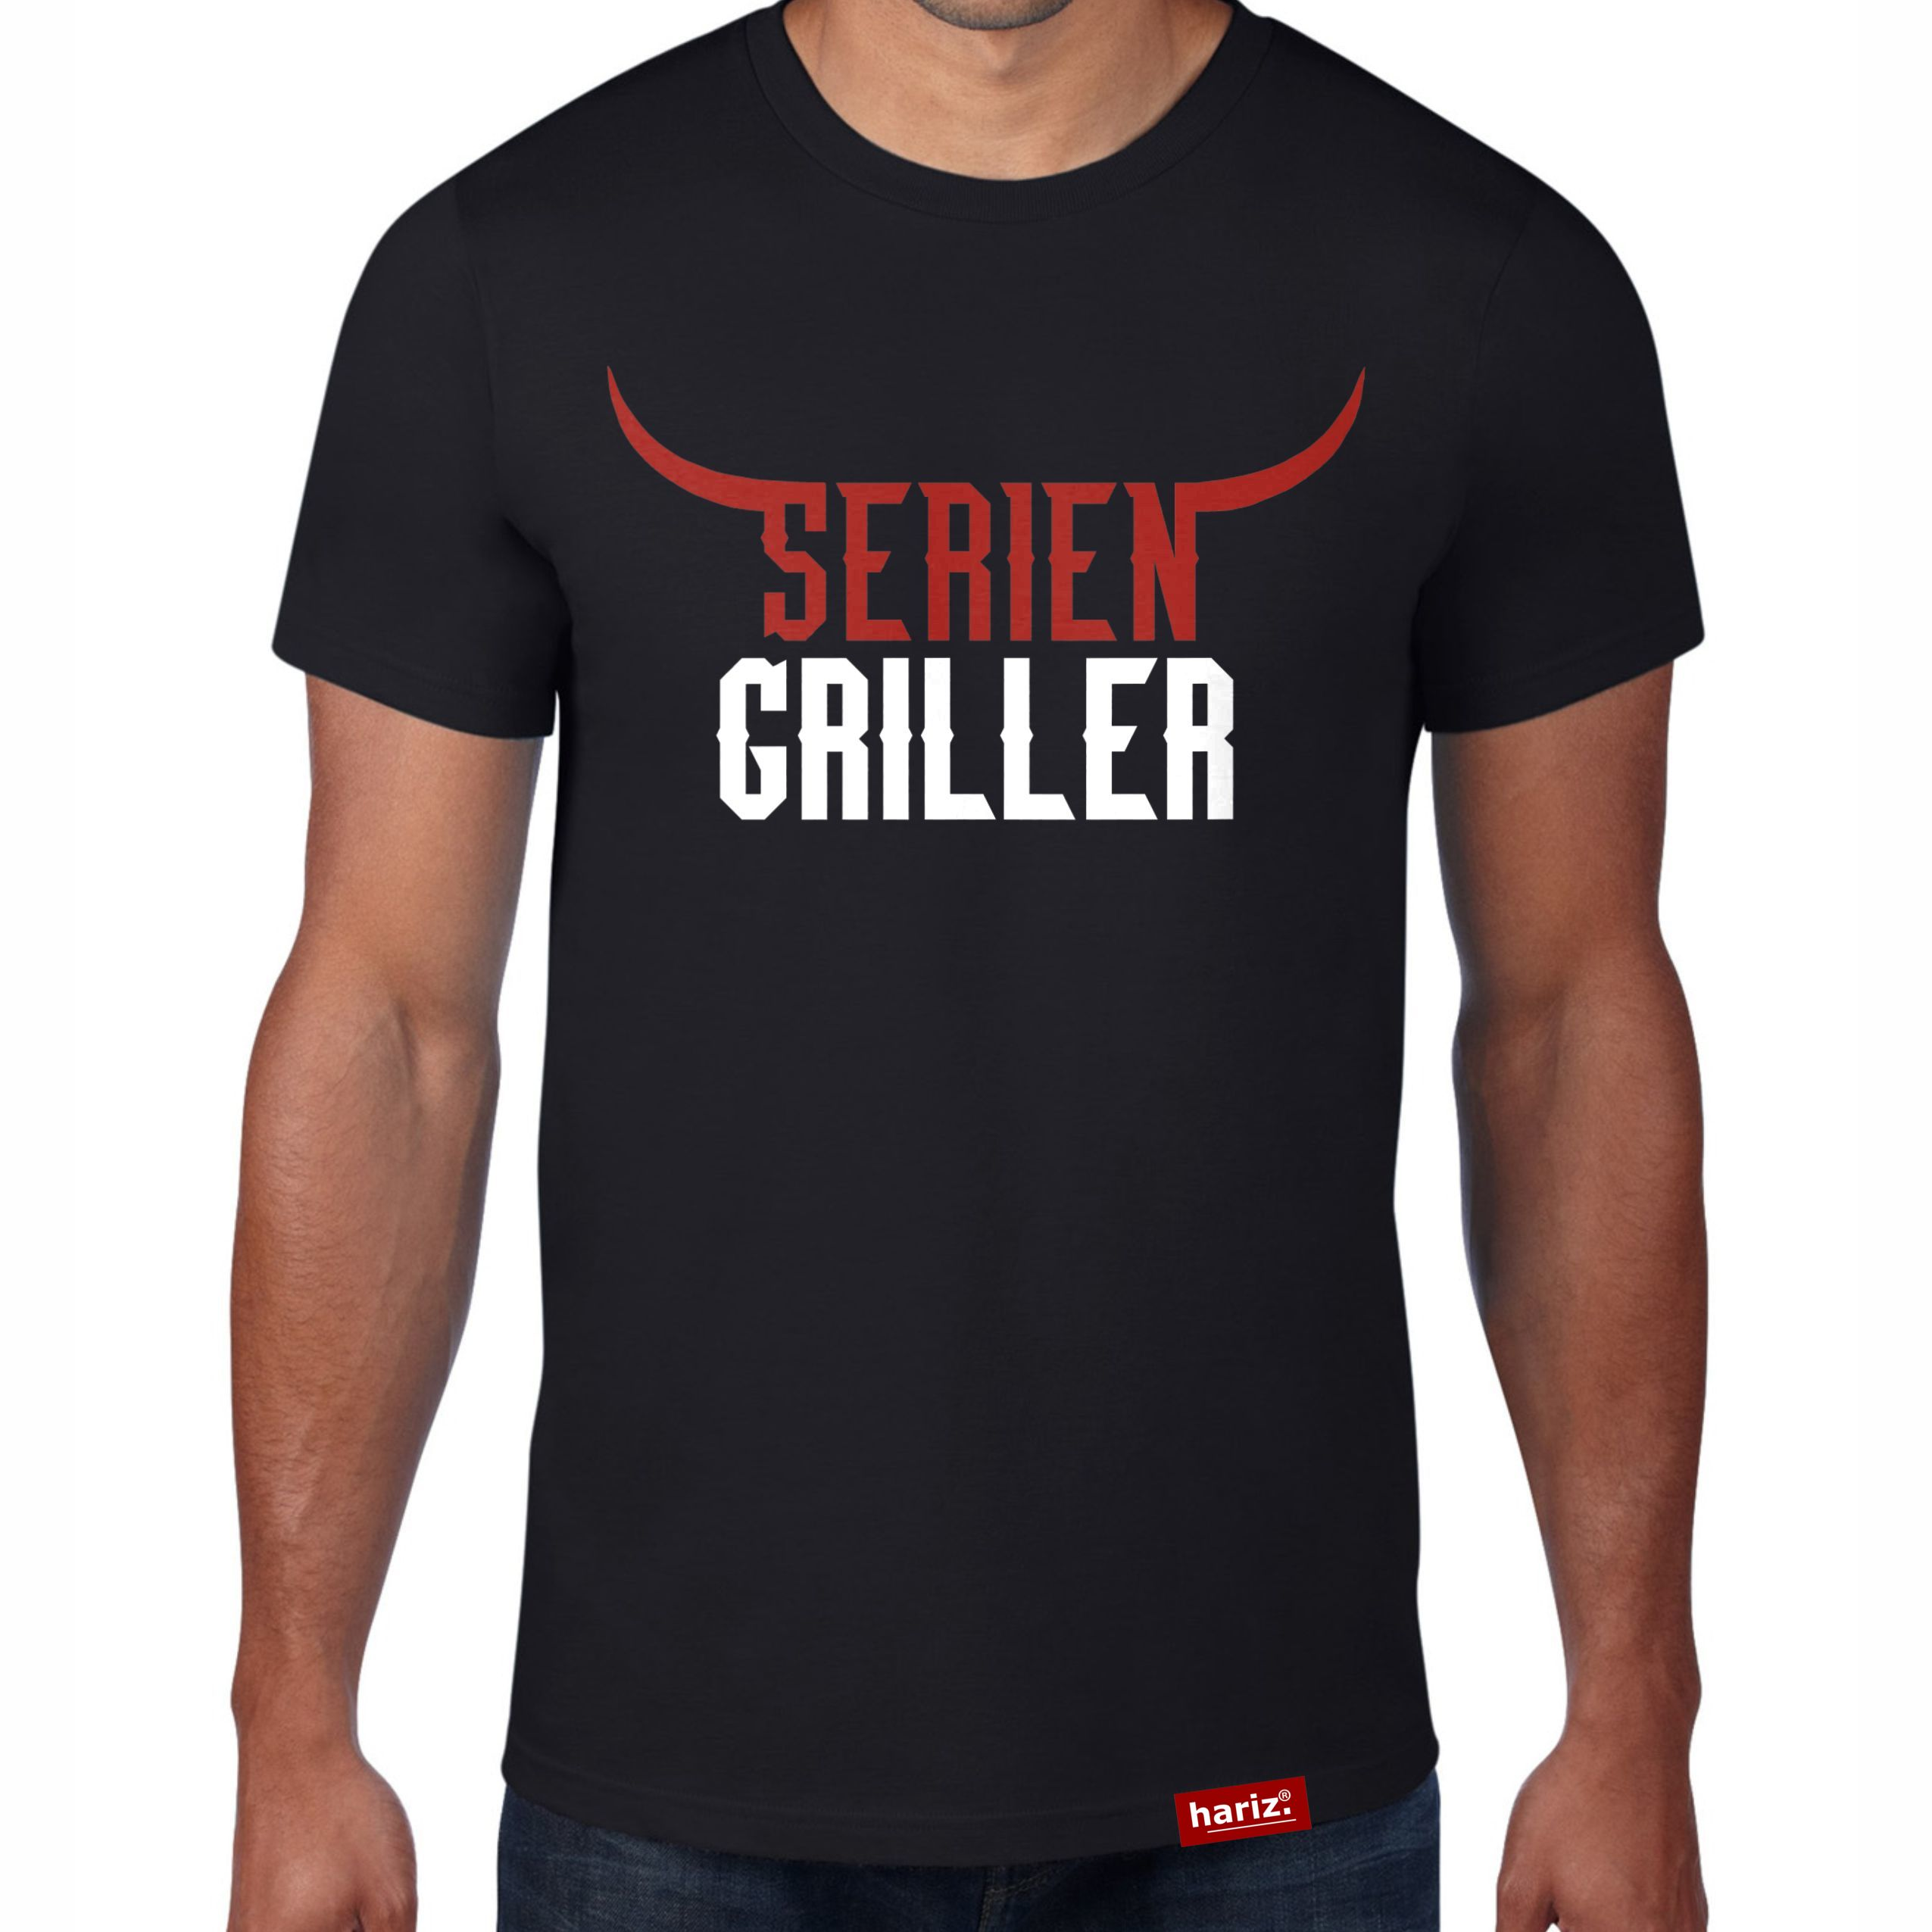 seriengriller serien griller original hariz t shirt sechzehn farben xs 4xxl. Black Bedroom Furniture Sets. Home Design Ideas